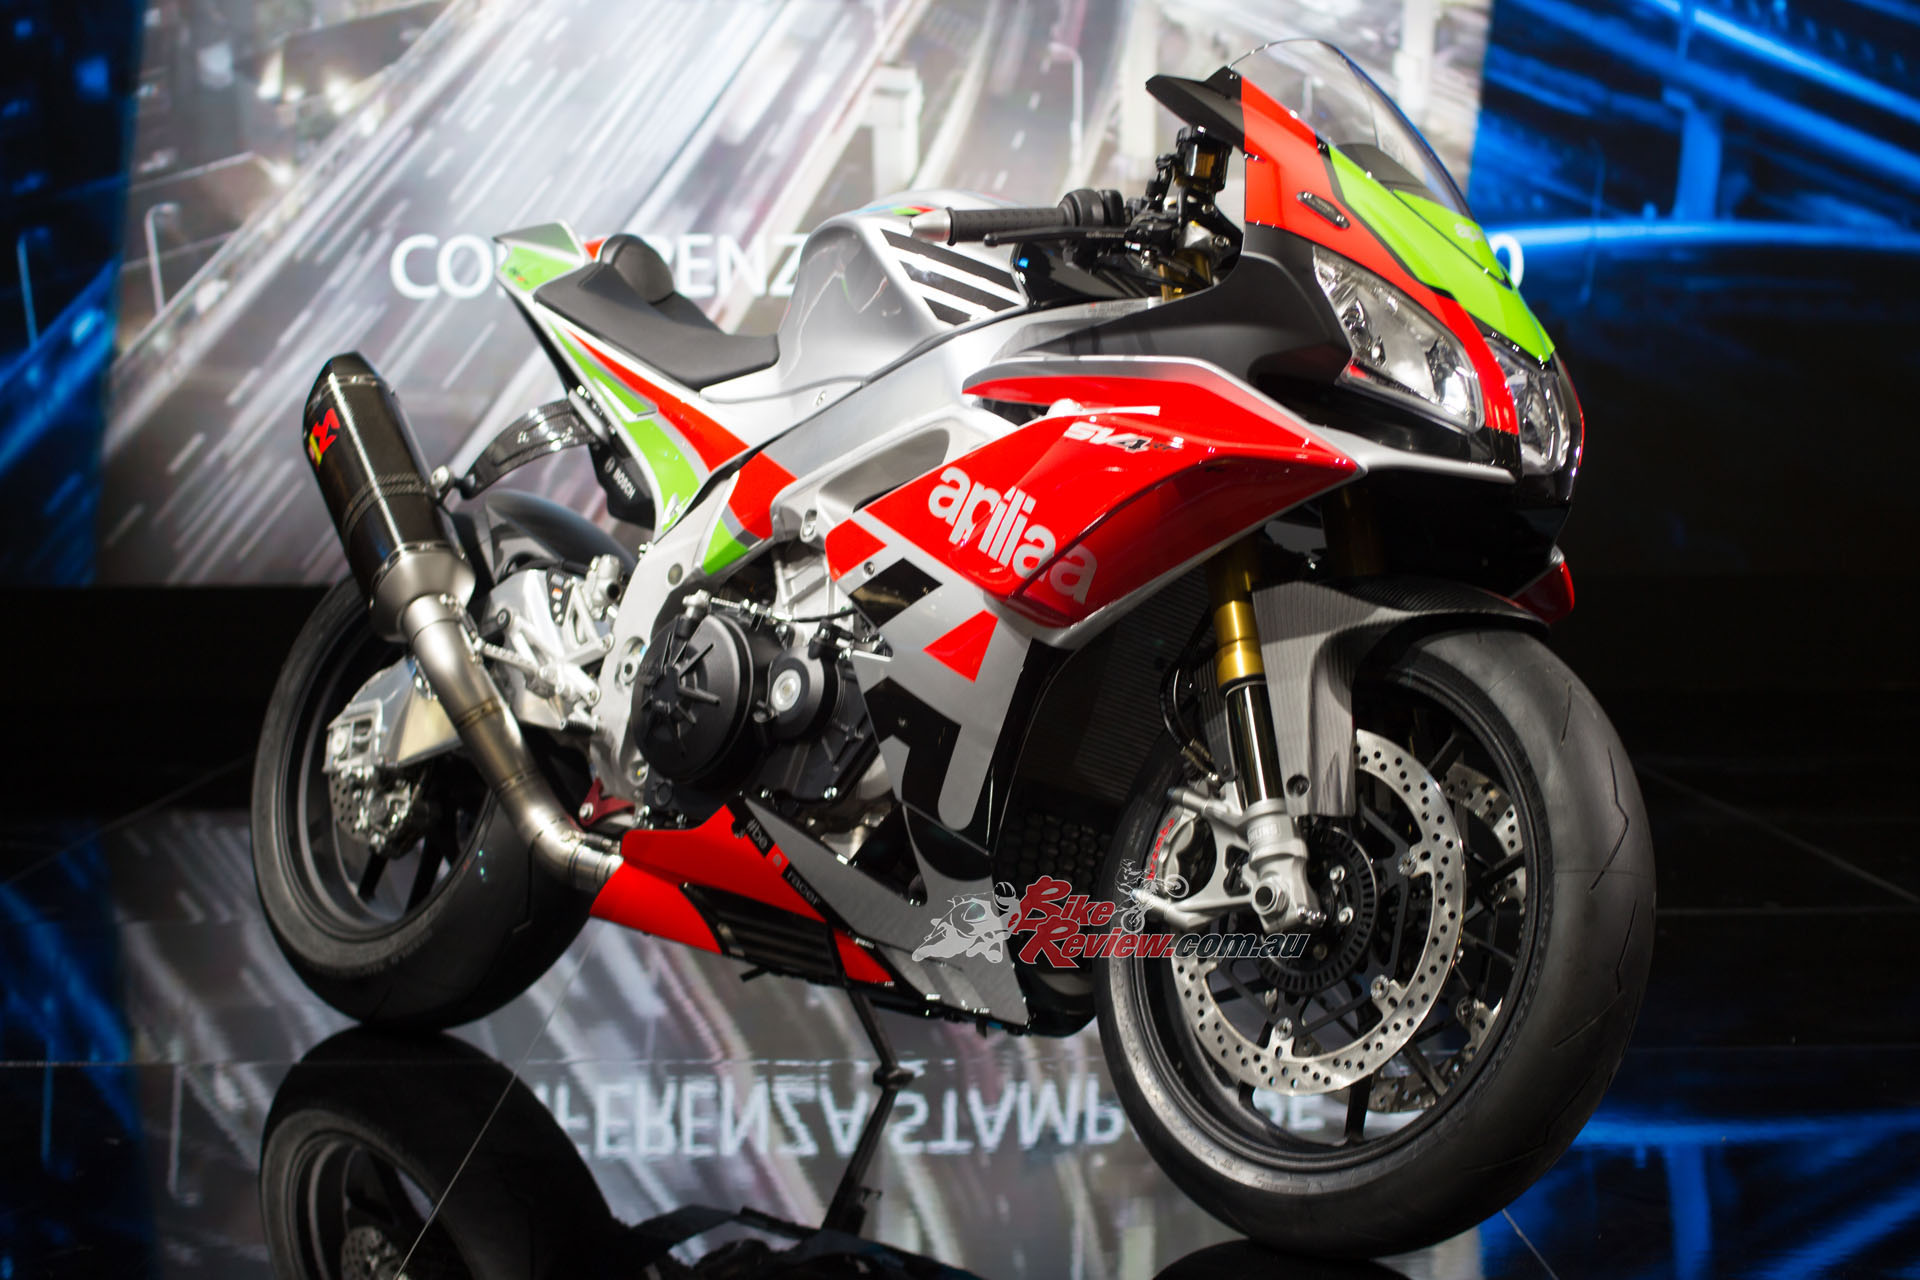 Aprilia unveiled the Racing Factory Works Kit for the RSV4